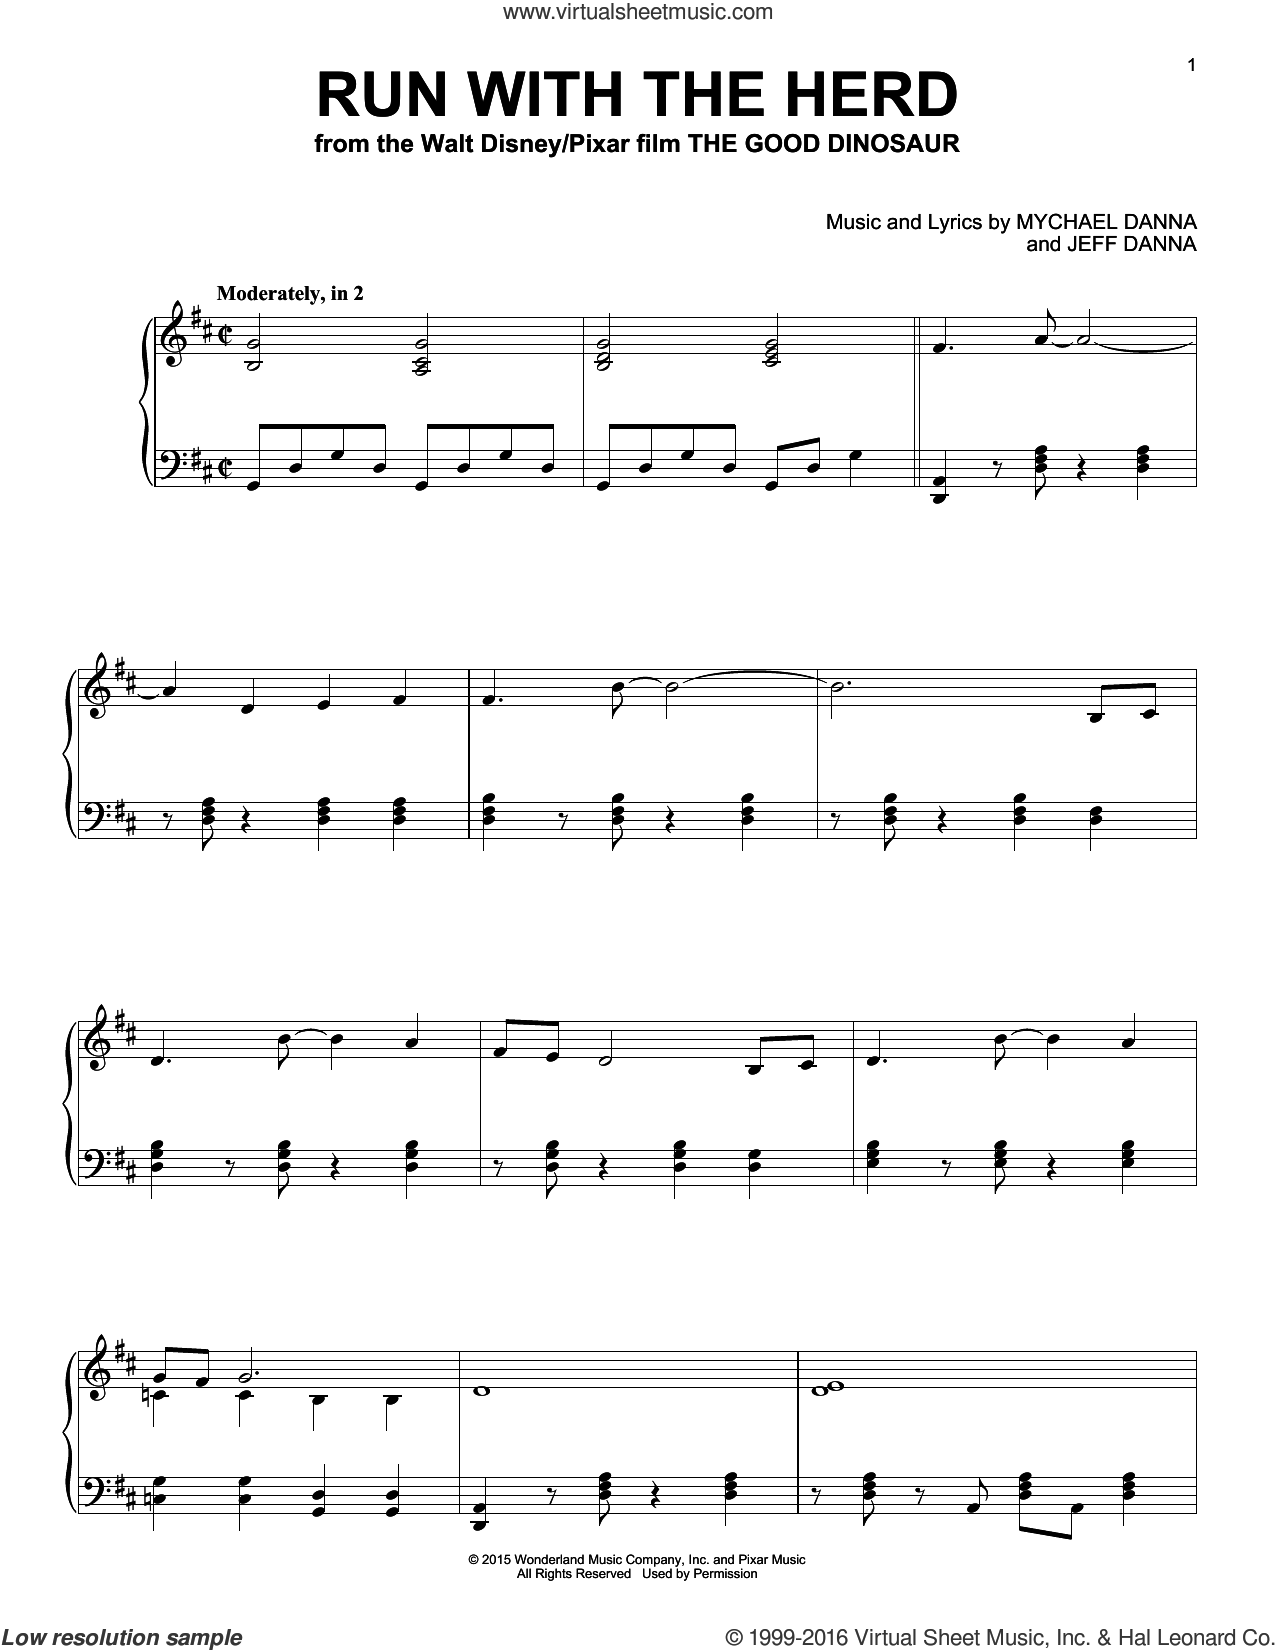 Run With The Herd sheet music for piano solo by Mychael & Jeff Danna and Mychael Danna, intermediate piano. Score Image Preview.